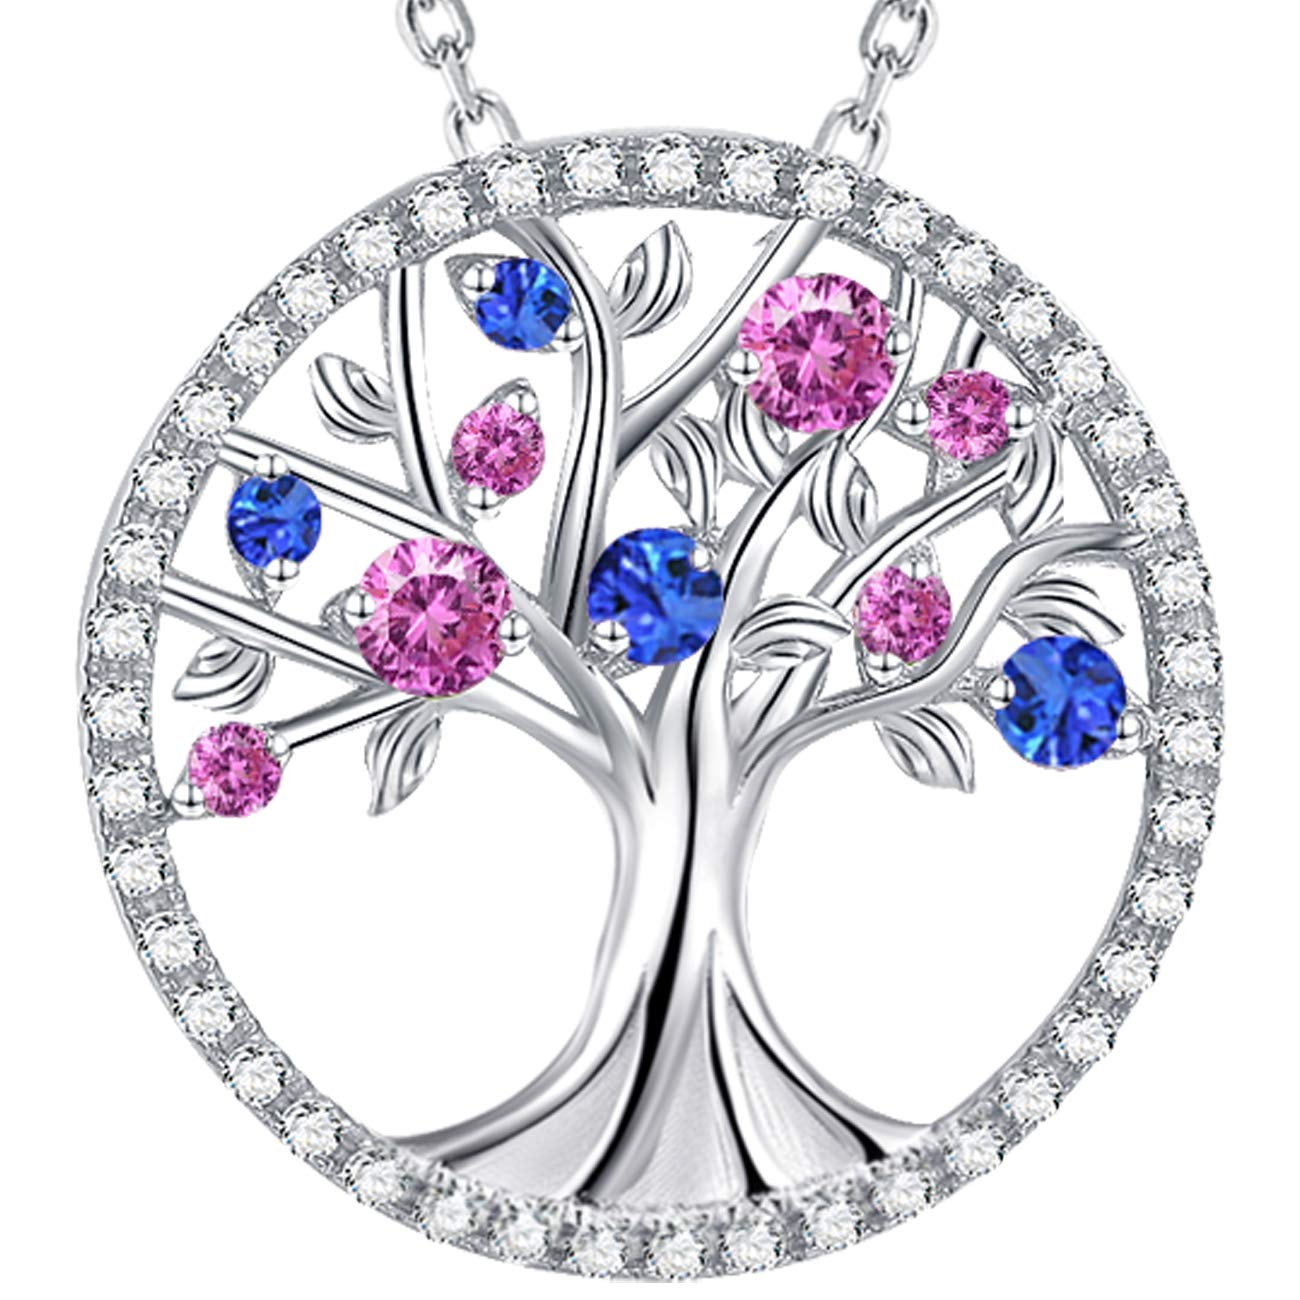 The Tree of Life Jewelry October Birthstone Created Pink Tourmaline Necklace Birthday Gift For Her Sterling Silver Elda&Co P712T-TMSA